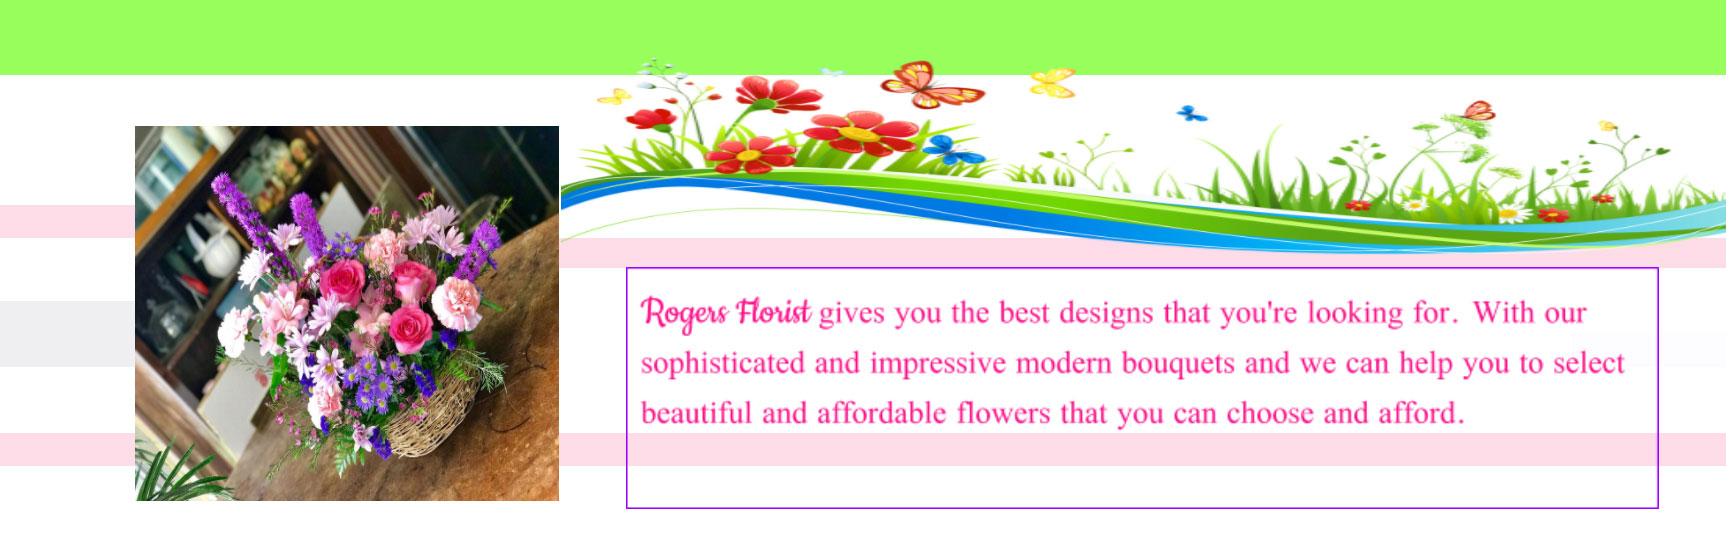 Rogers Florist gives you the best designs that you're looking for...